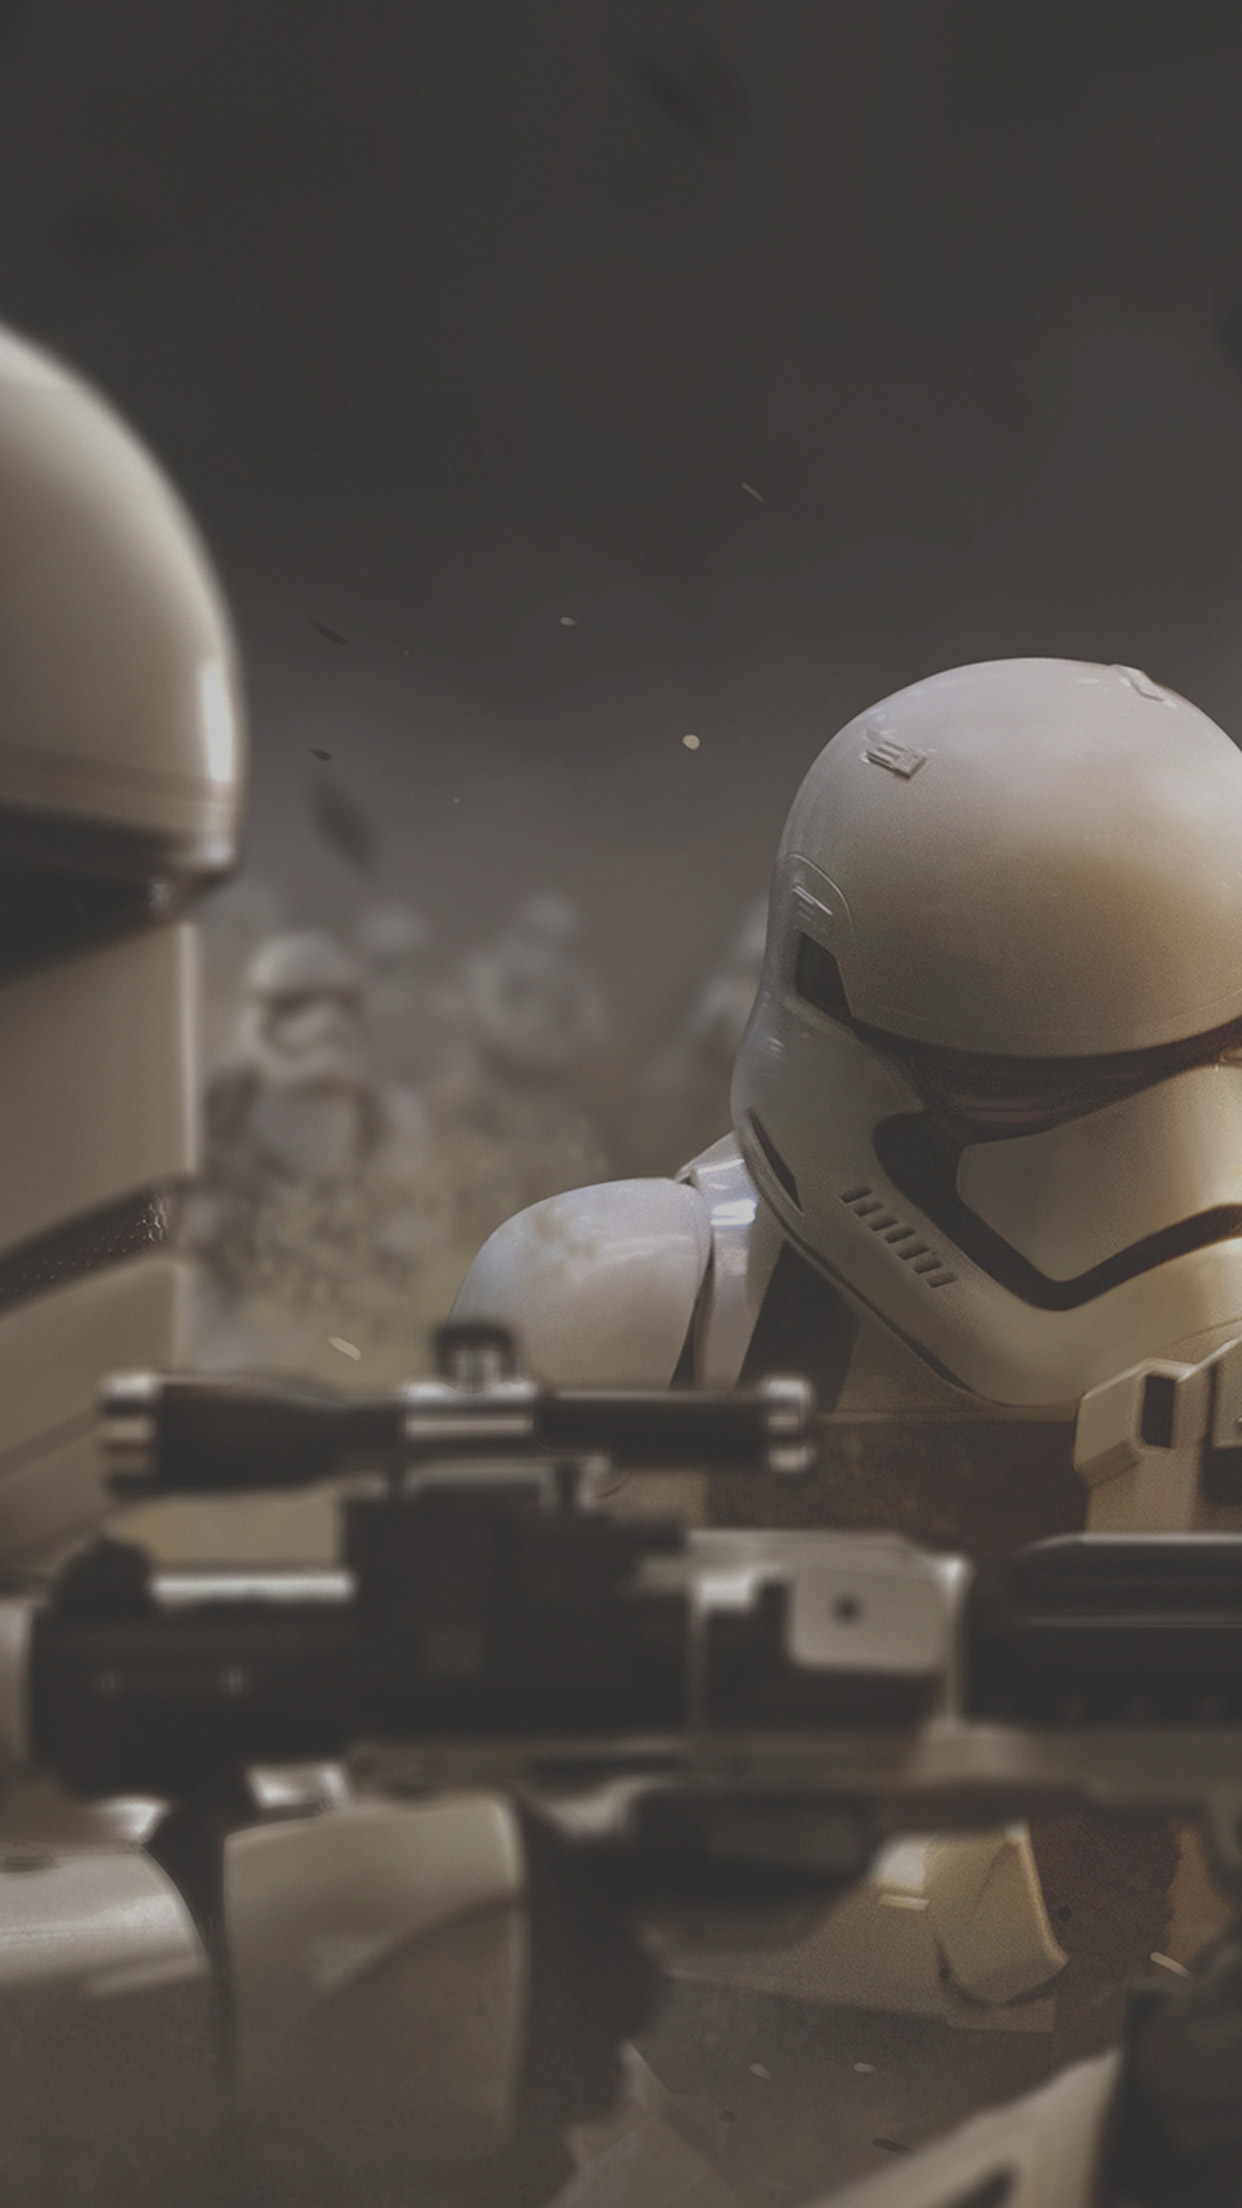 Star-Wars-The-Force-Awakens-Stormtrooper-Wallpaper-iDeviceArt